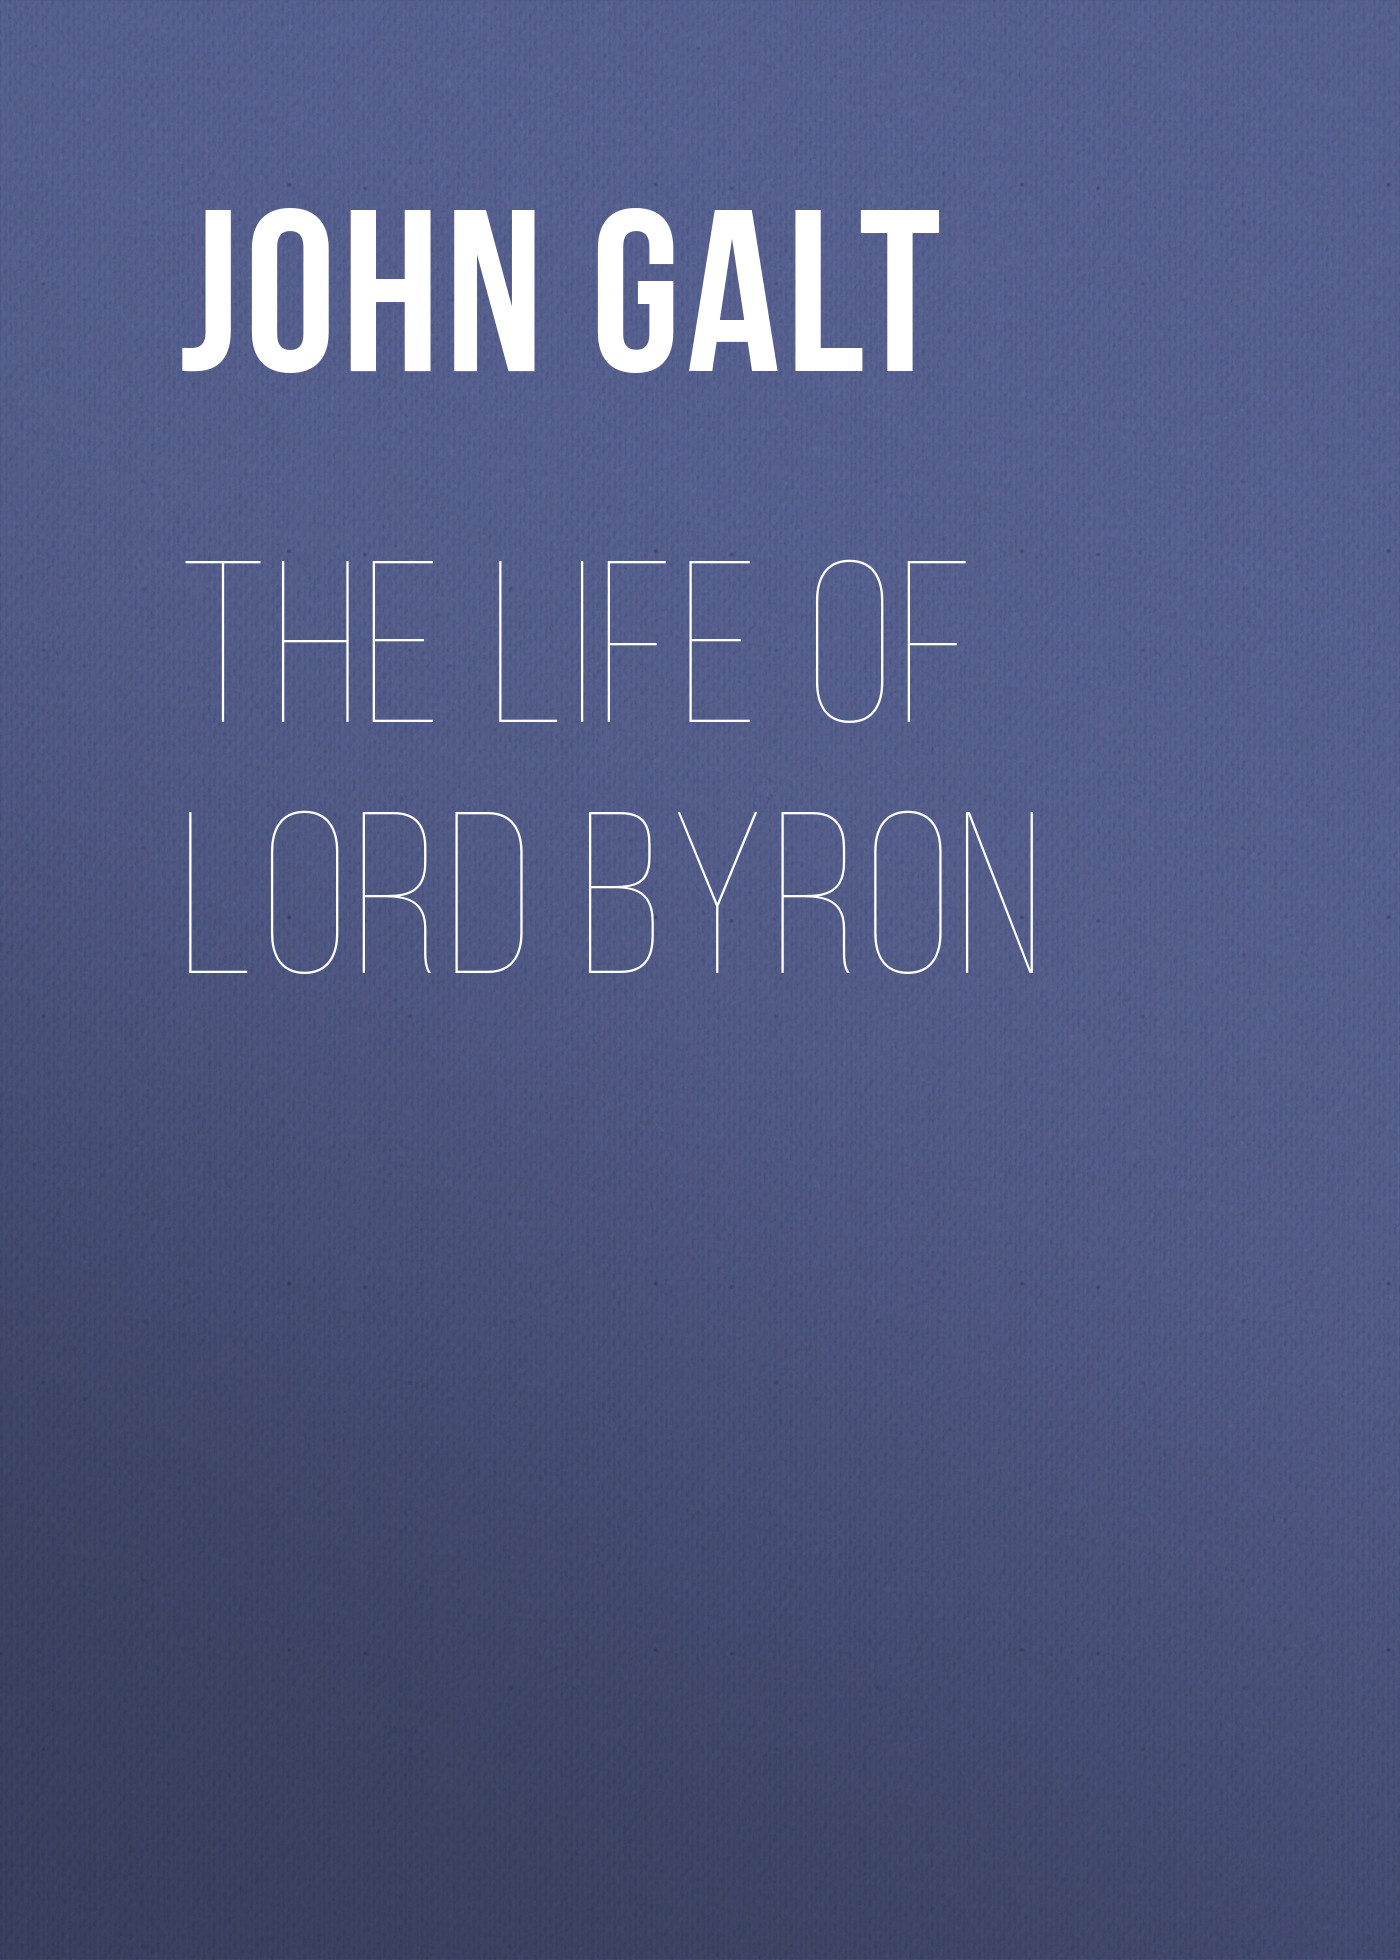 John Galt The Life of Lord Byron john galt the life studies and works of benjamin west esq